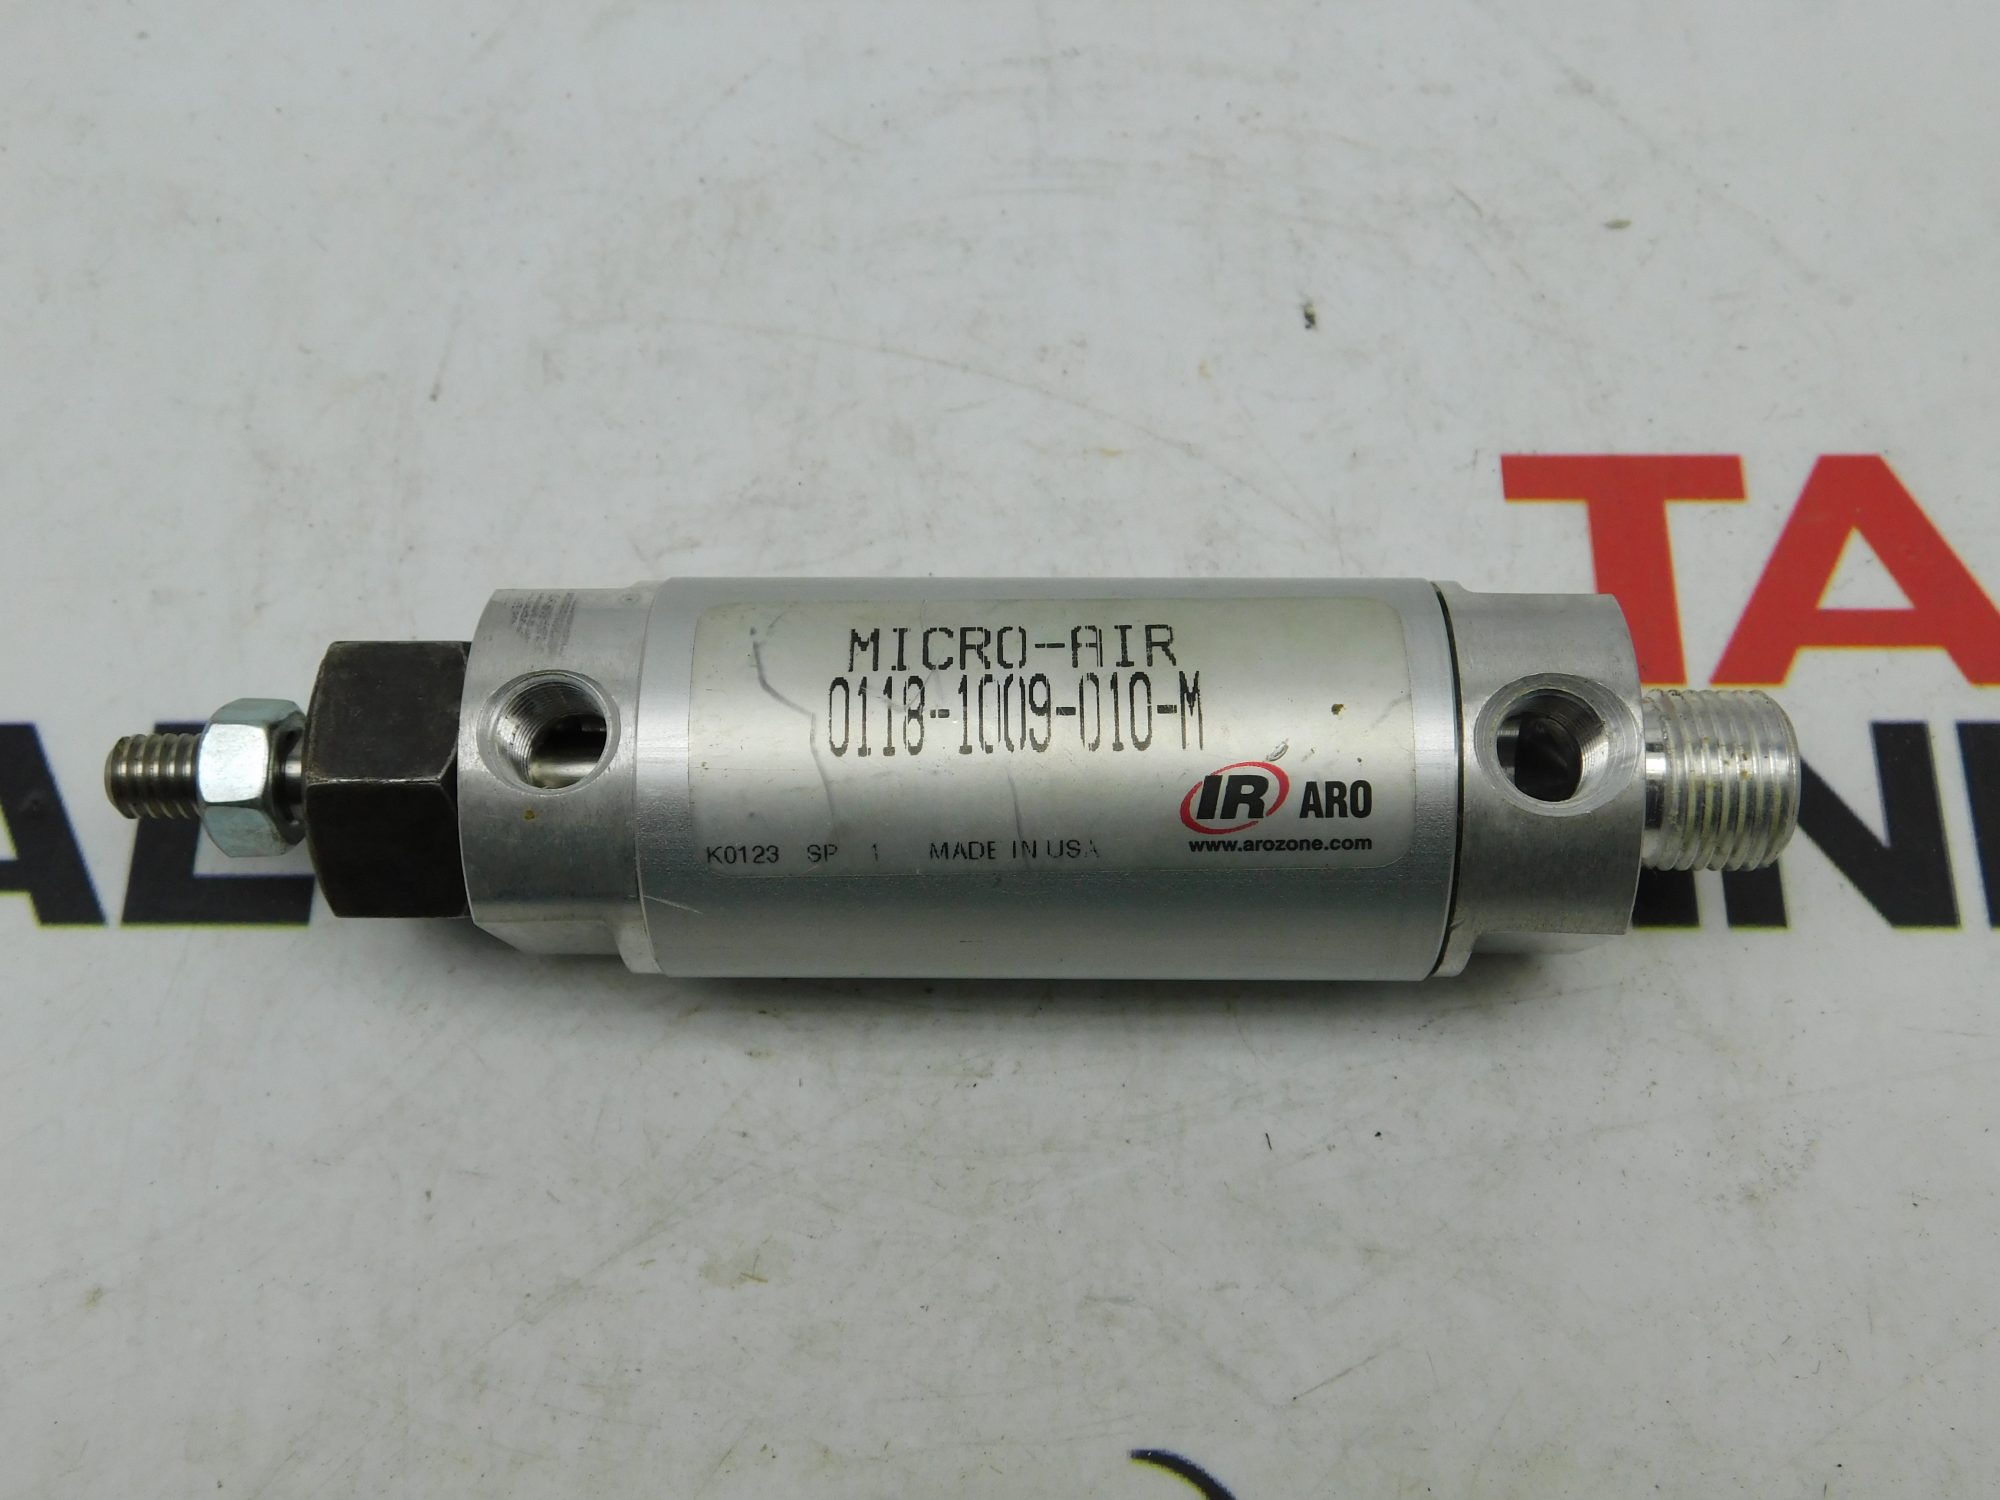 ARO 0118-1009-010-M Pneumatic Air Cylinder